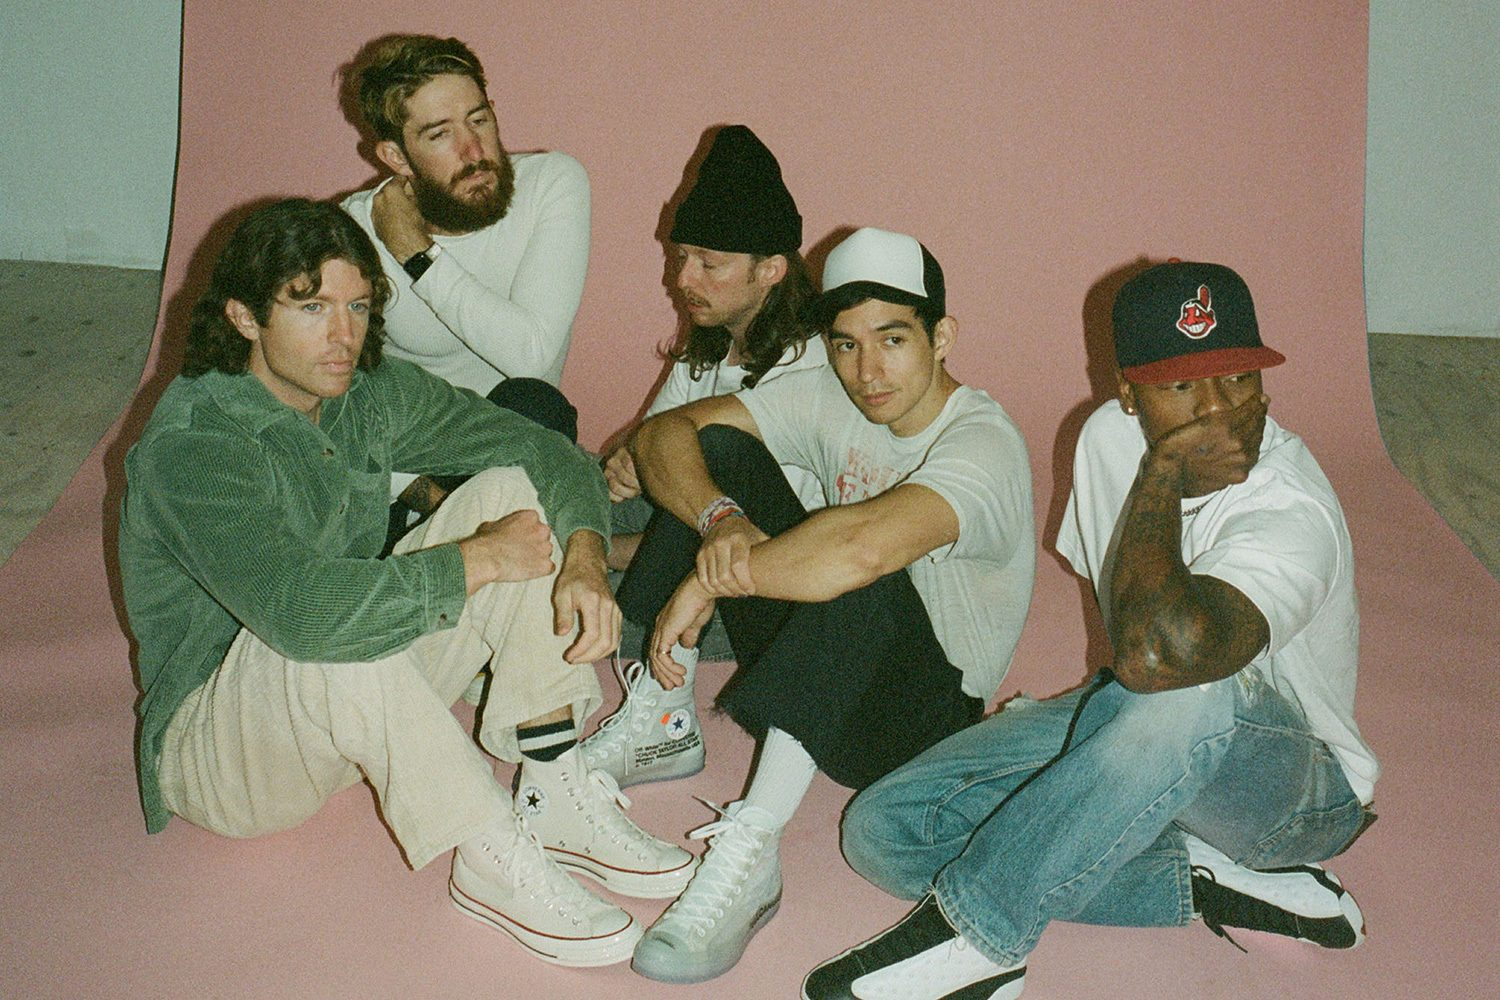 """Turnstile: """"The hardcore scene allows freedom to be who you are"""""""